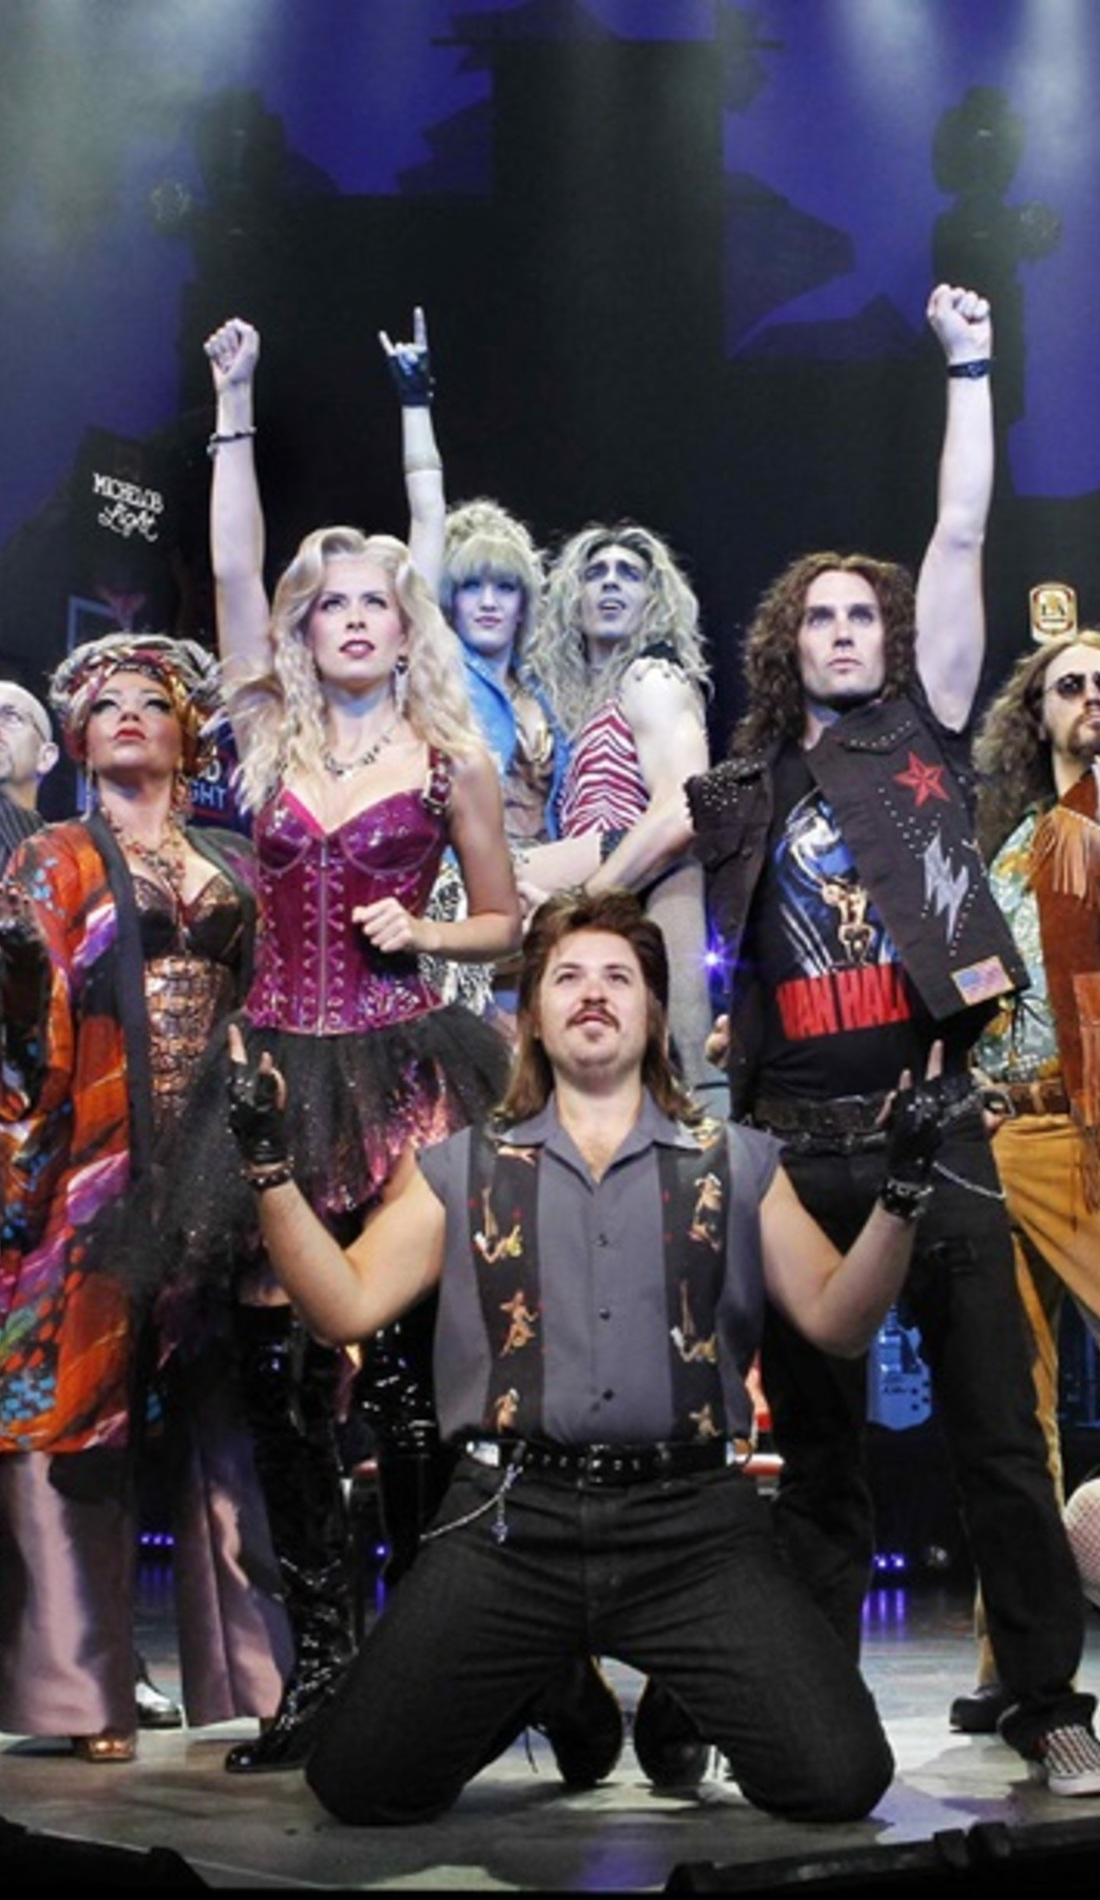 A Rock of Ages live event